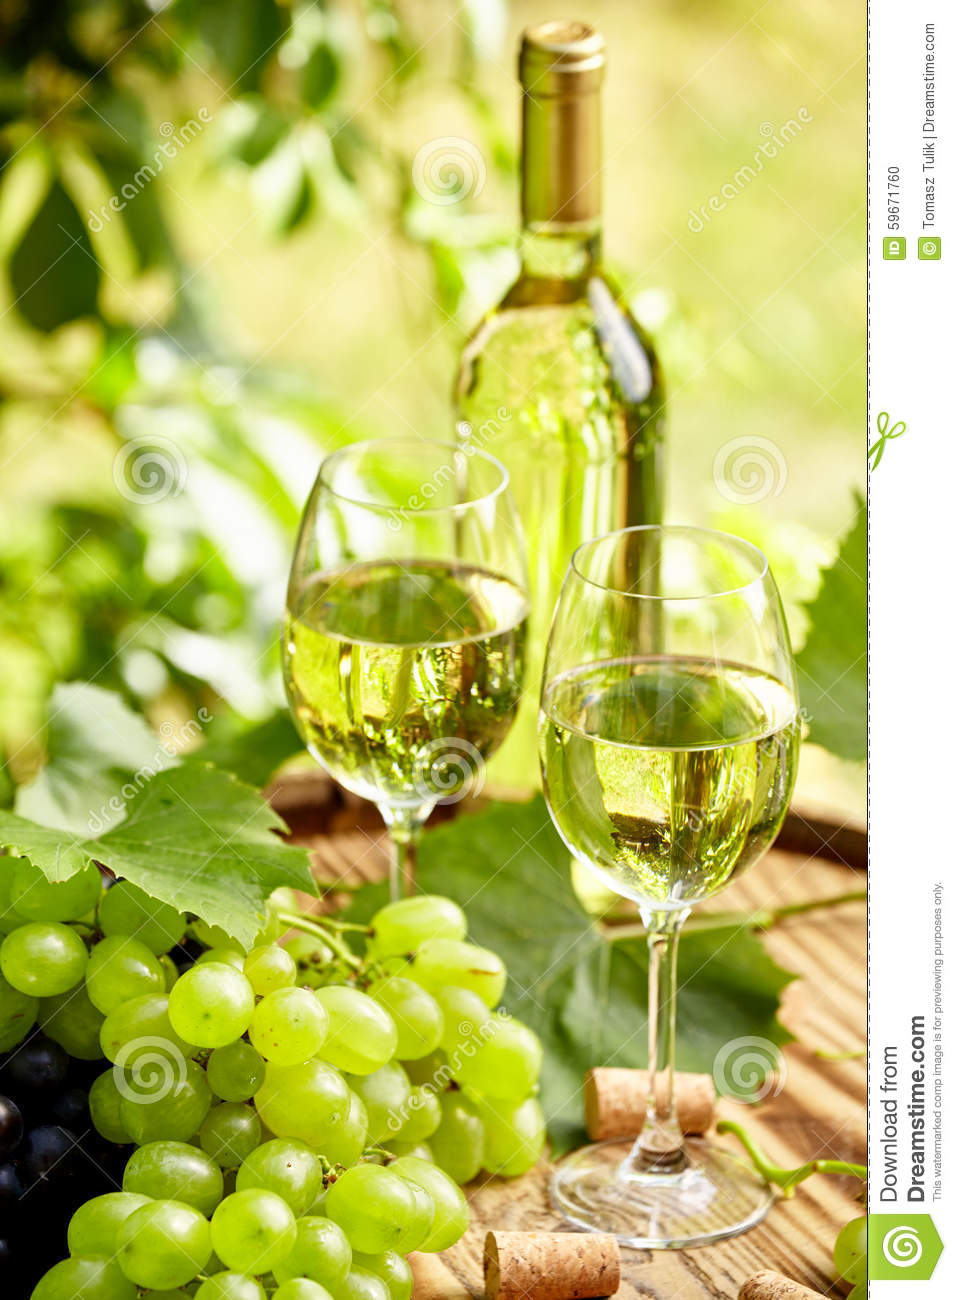 vin blanc avec le verre vin et les raisins sur la terrasse de jardin photo stock image du. Black Bedroom Furniture Sets. Home Design Ideas